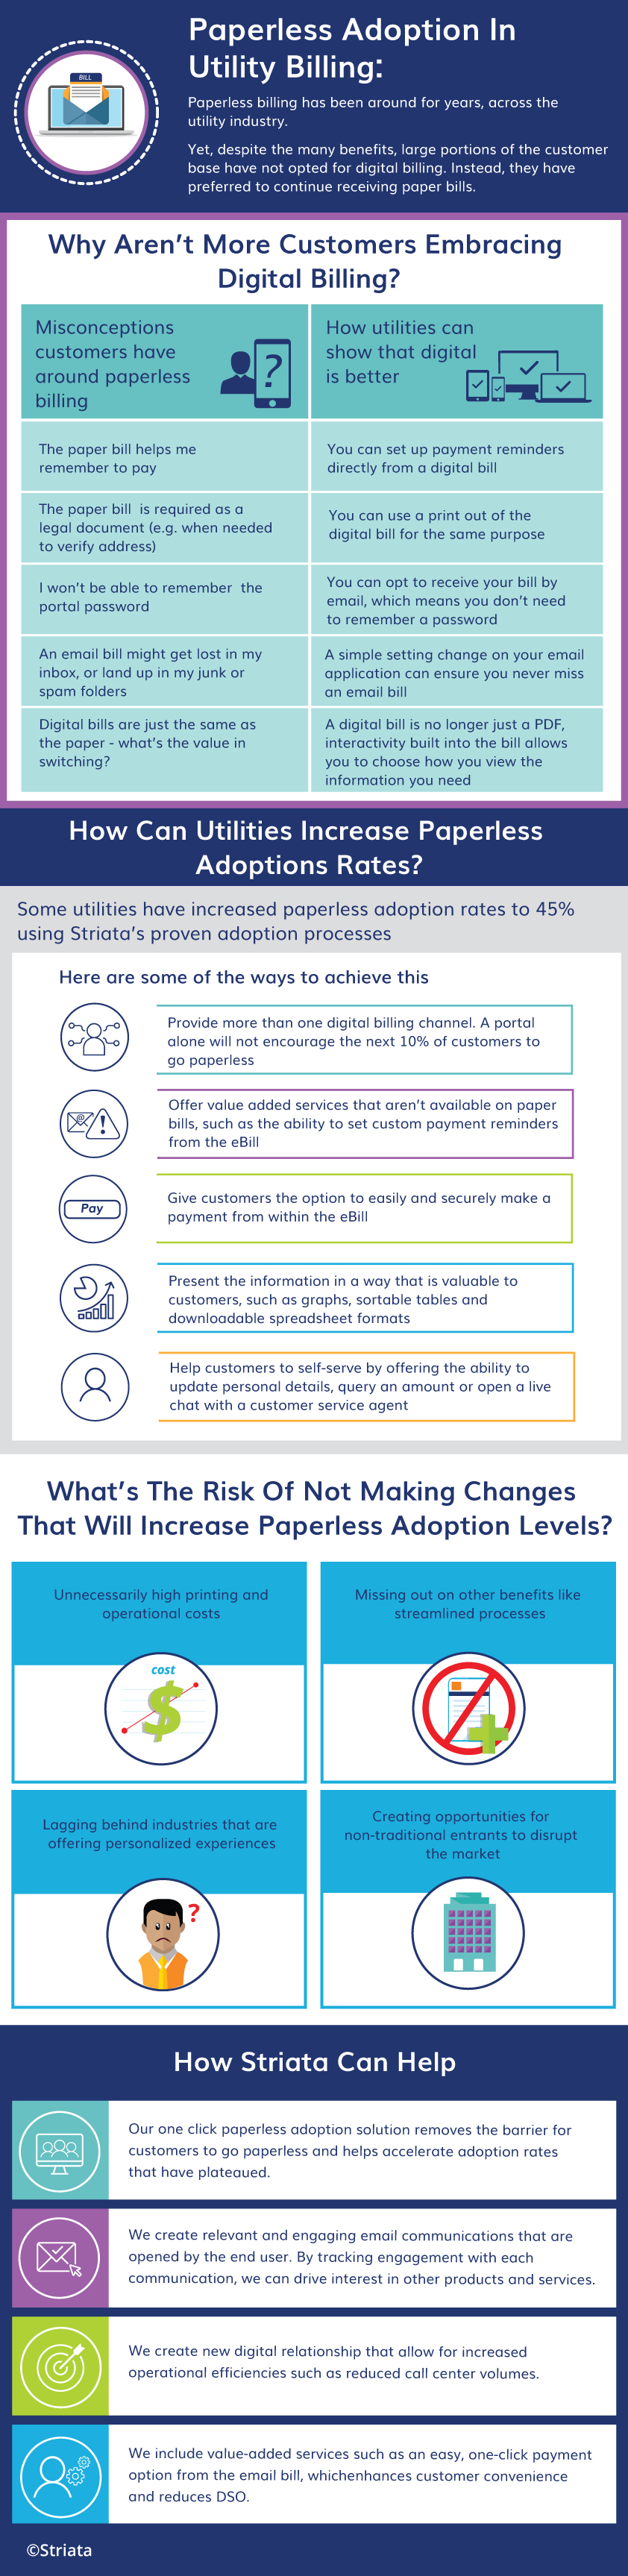 Paperless Adoption In Utility Billing Info Graphic